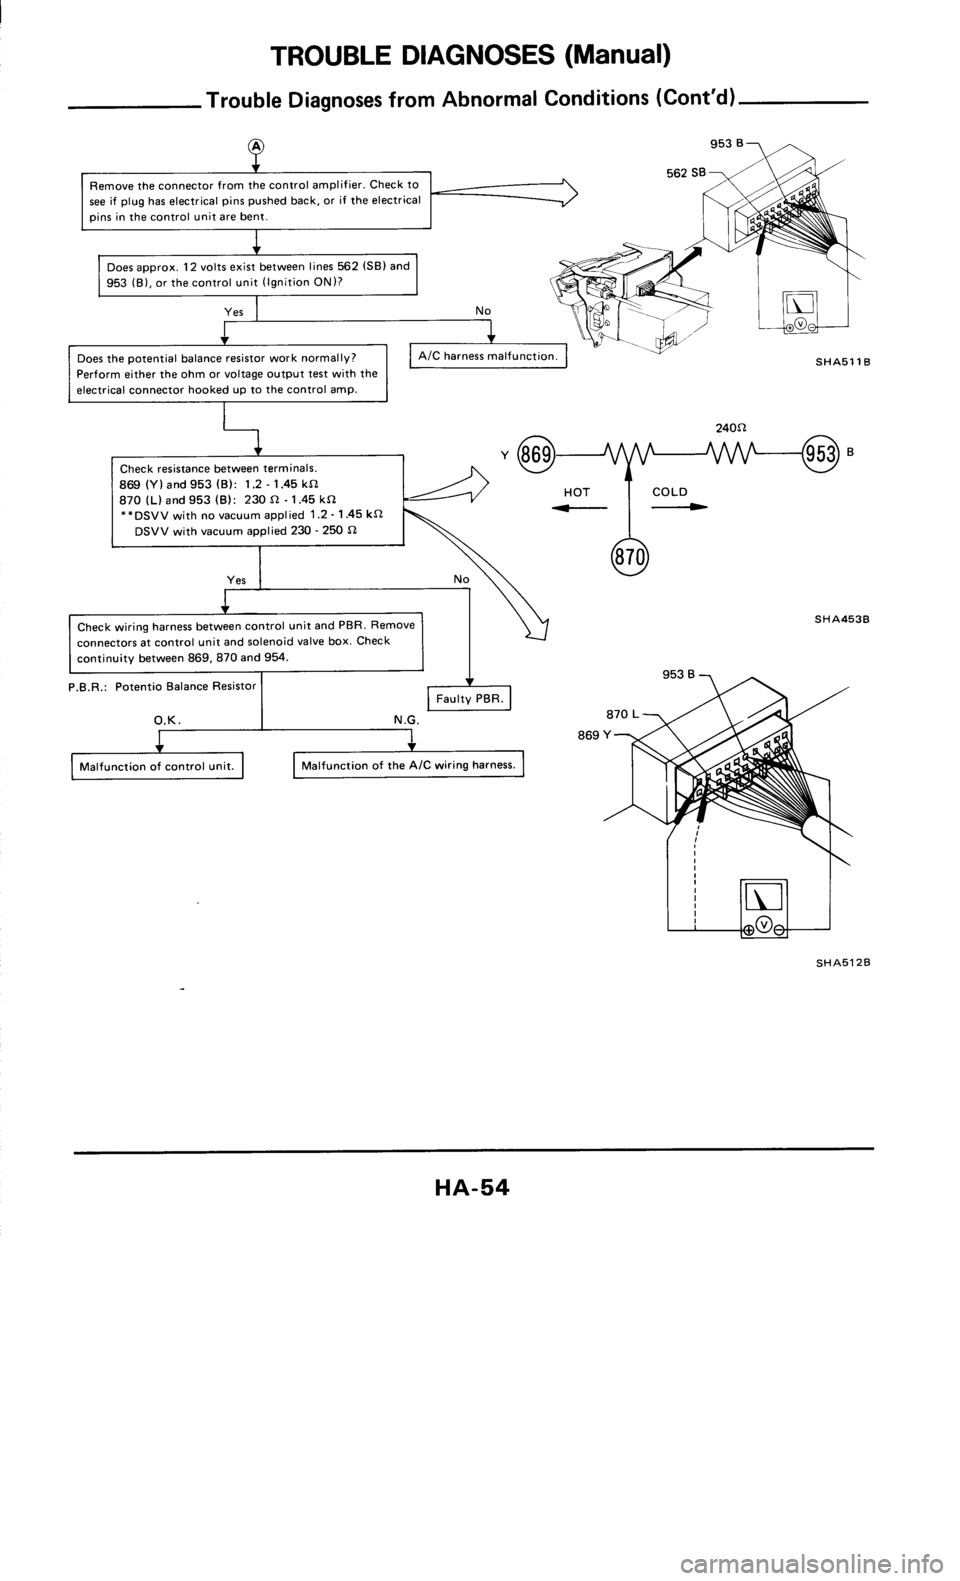 Nissan 300zx 1986 Z31 Heather And Air Conditioner Workshop Manual Wiring Harness